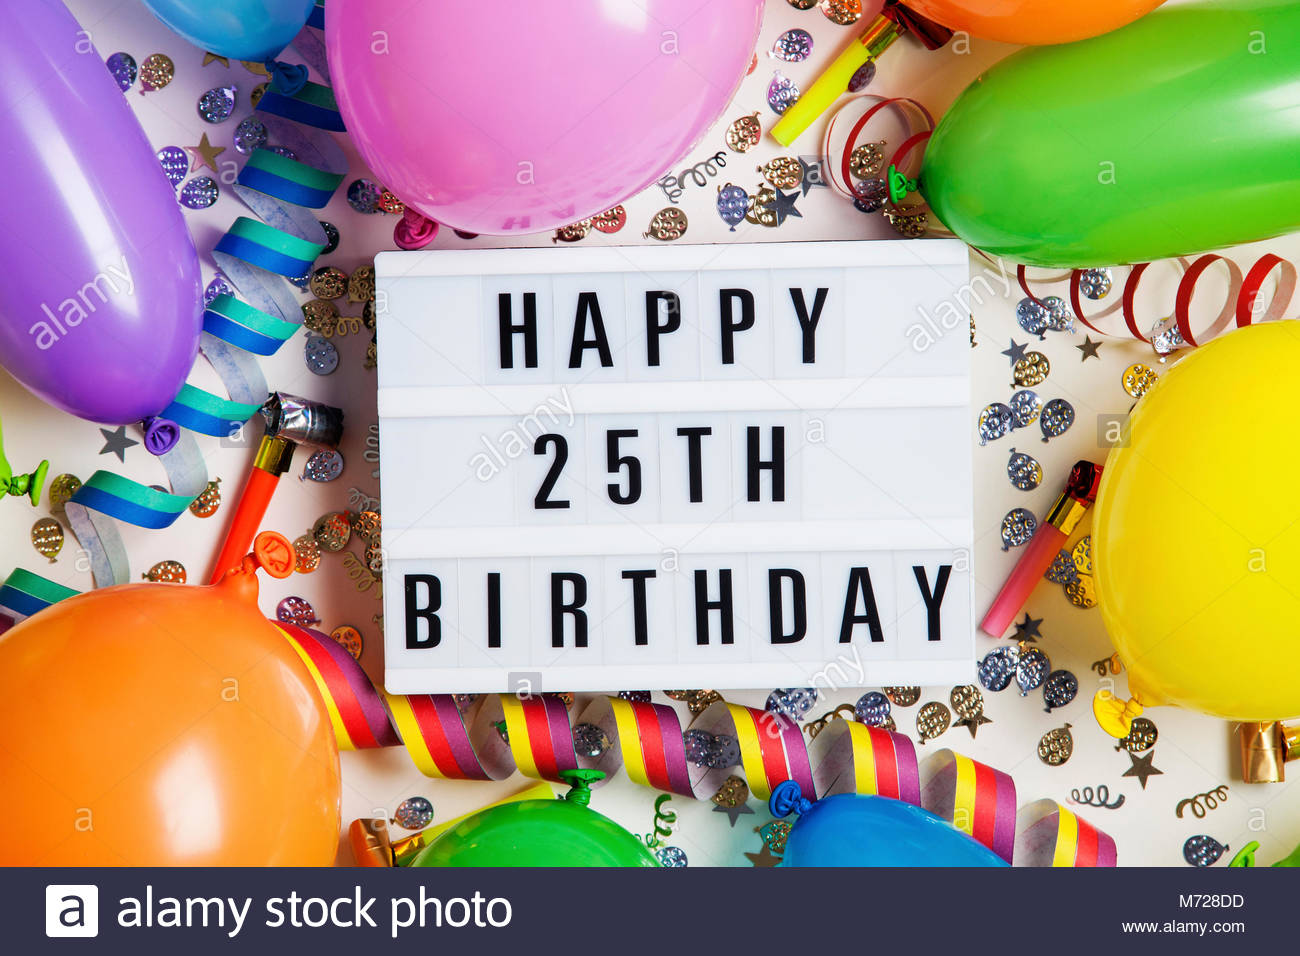 happy 25th birthday images ; happy-25th-birthday-celebration-message-on-a-lightbox-with-balloons-M728DD